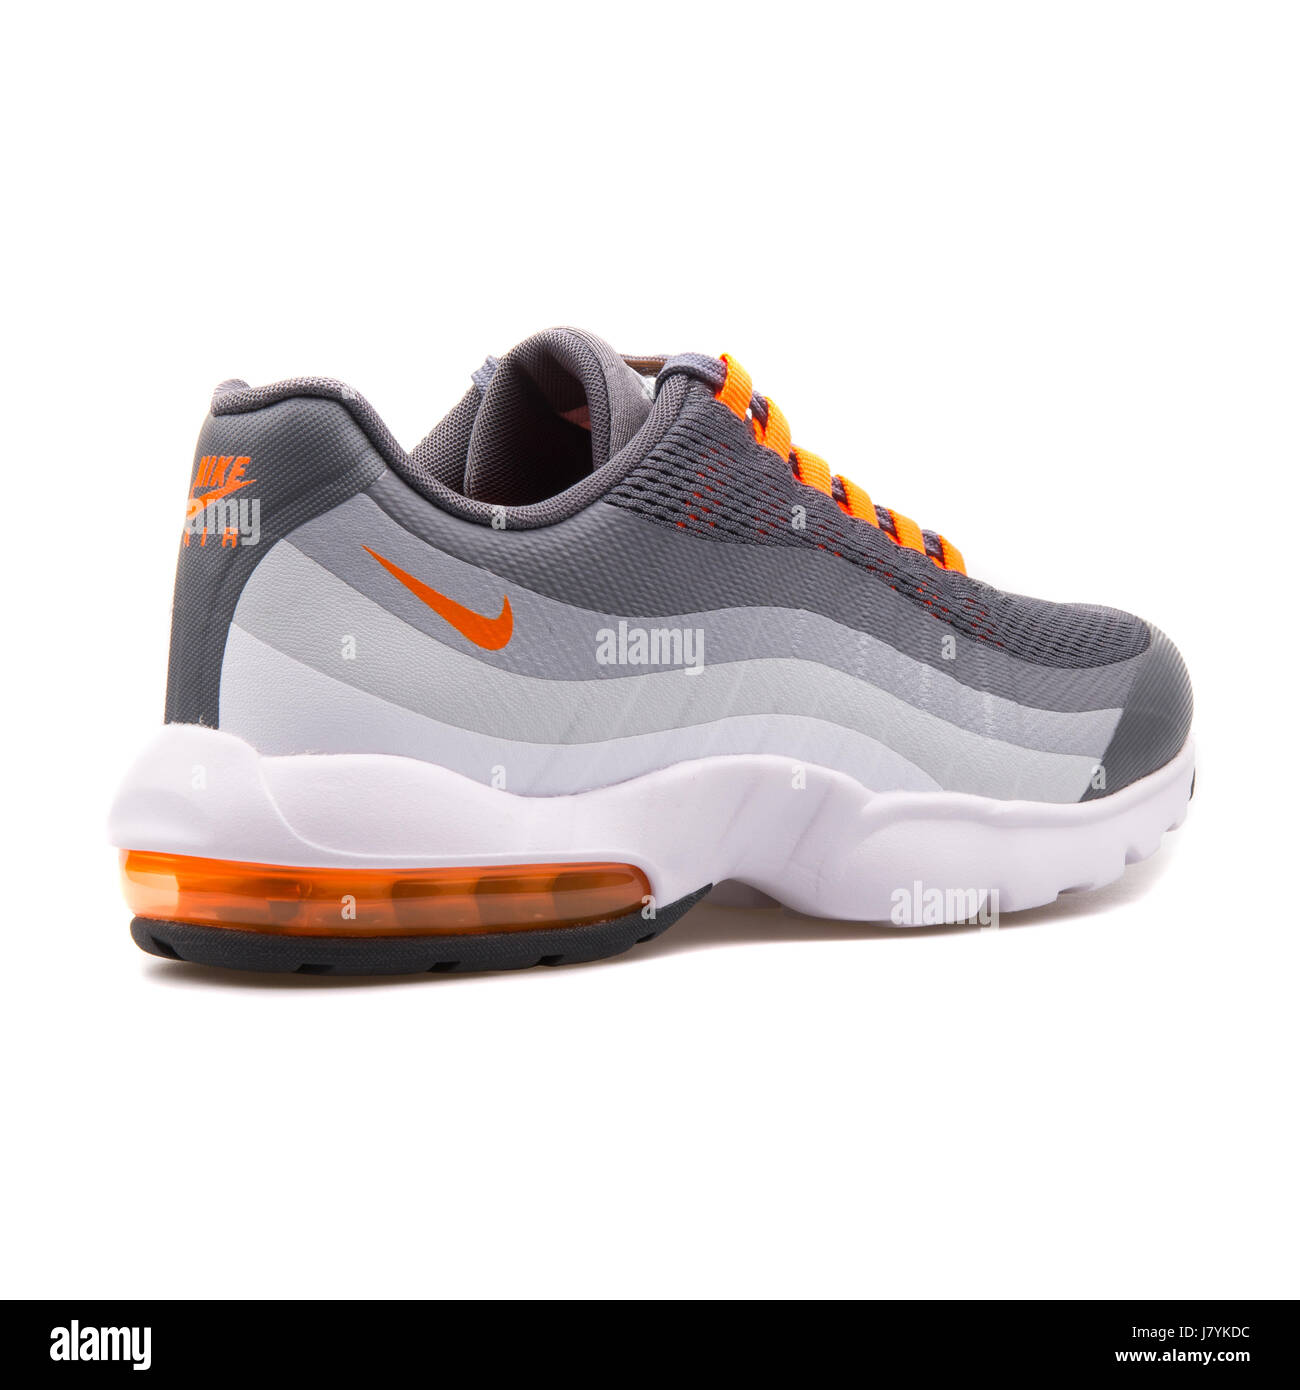 wholesale dealer 6bc6d a6c77 Nike WMNS Air Max 95 Ultra Grey and Orange Running Sneakers - 749212-001 -